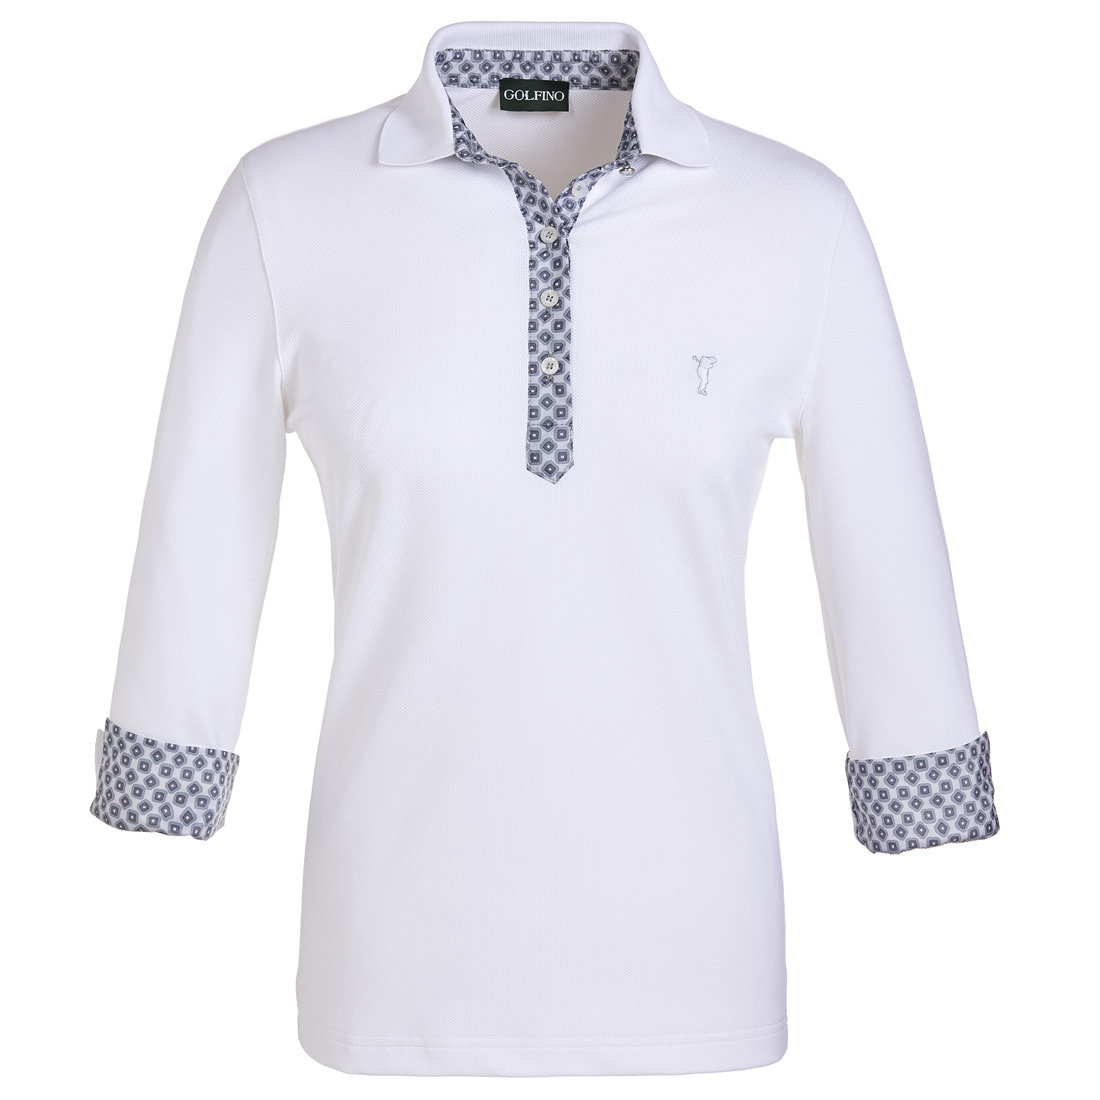 Damen 3/4-Arm Golfpolo mit Moisture Management Funktion